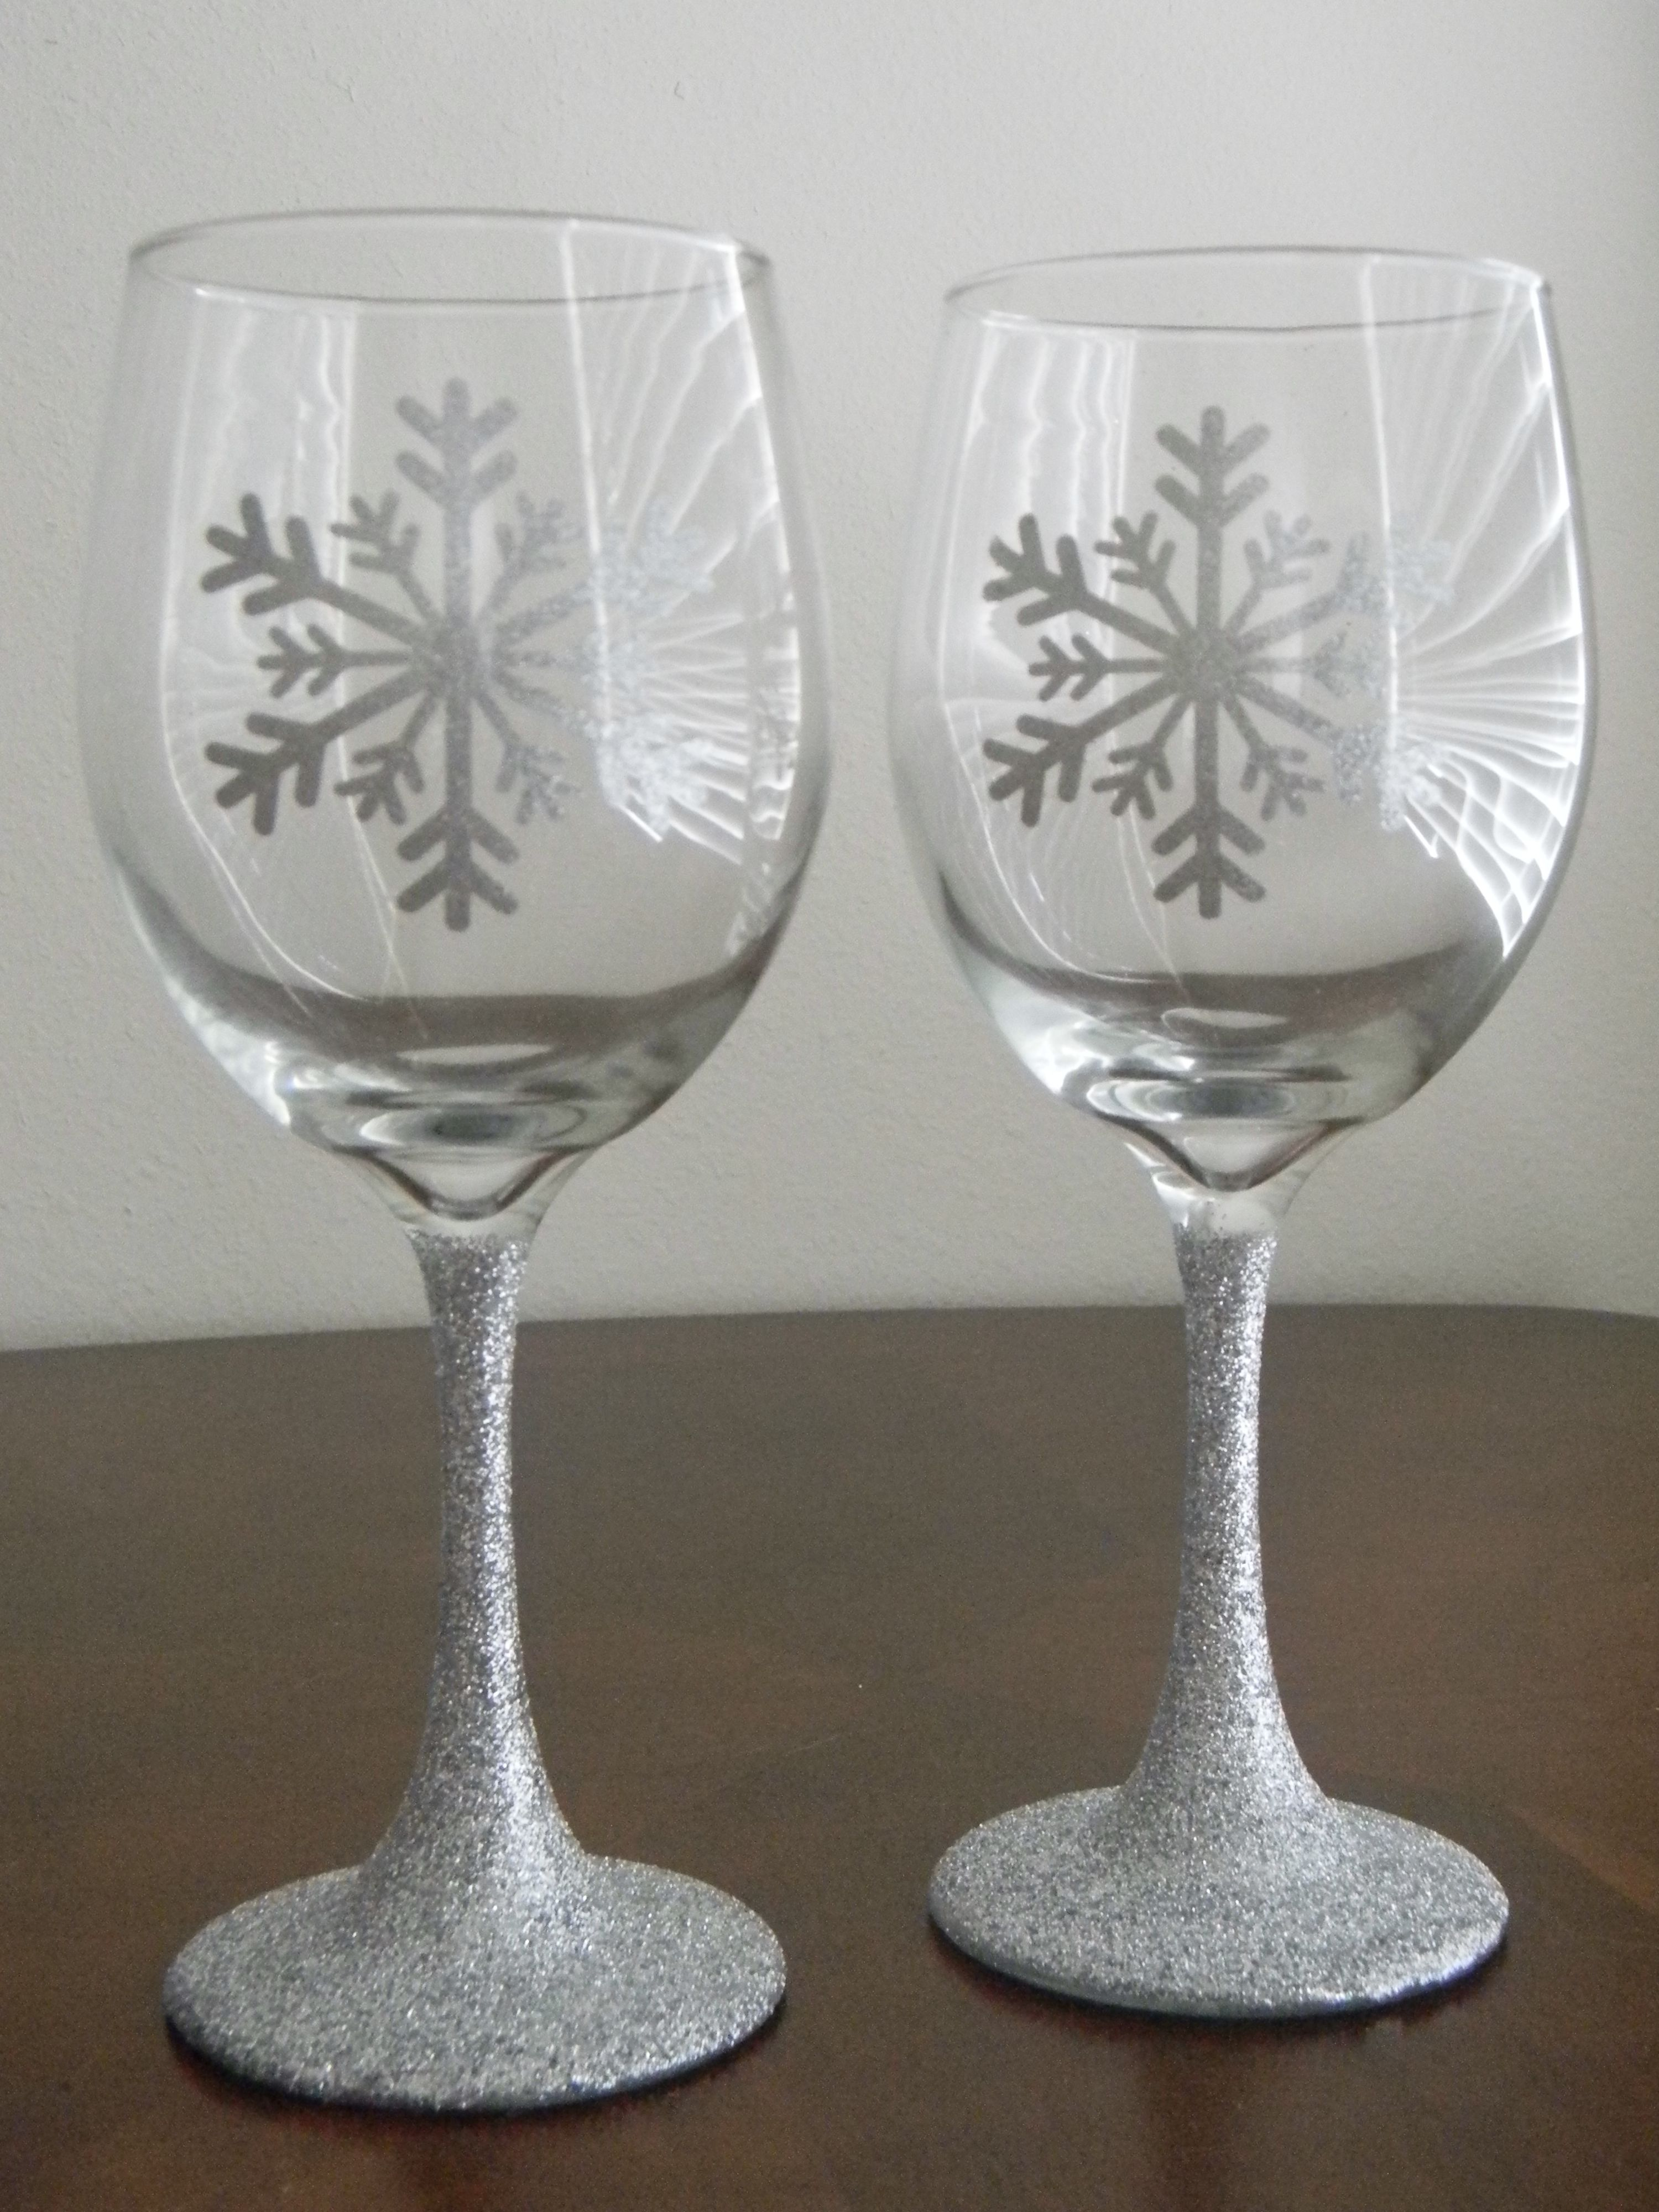 Glitter Stem Vinyl Snowflake Wine Glasses Holiday Wine Glasses Decorated Wine Glasses Christmas Wine Glasses